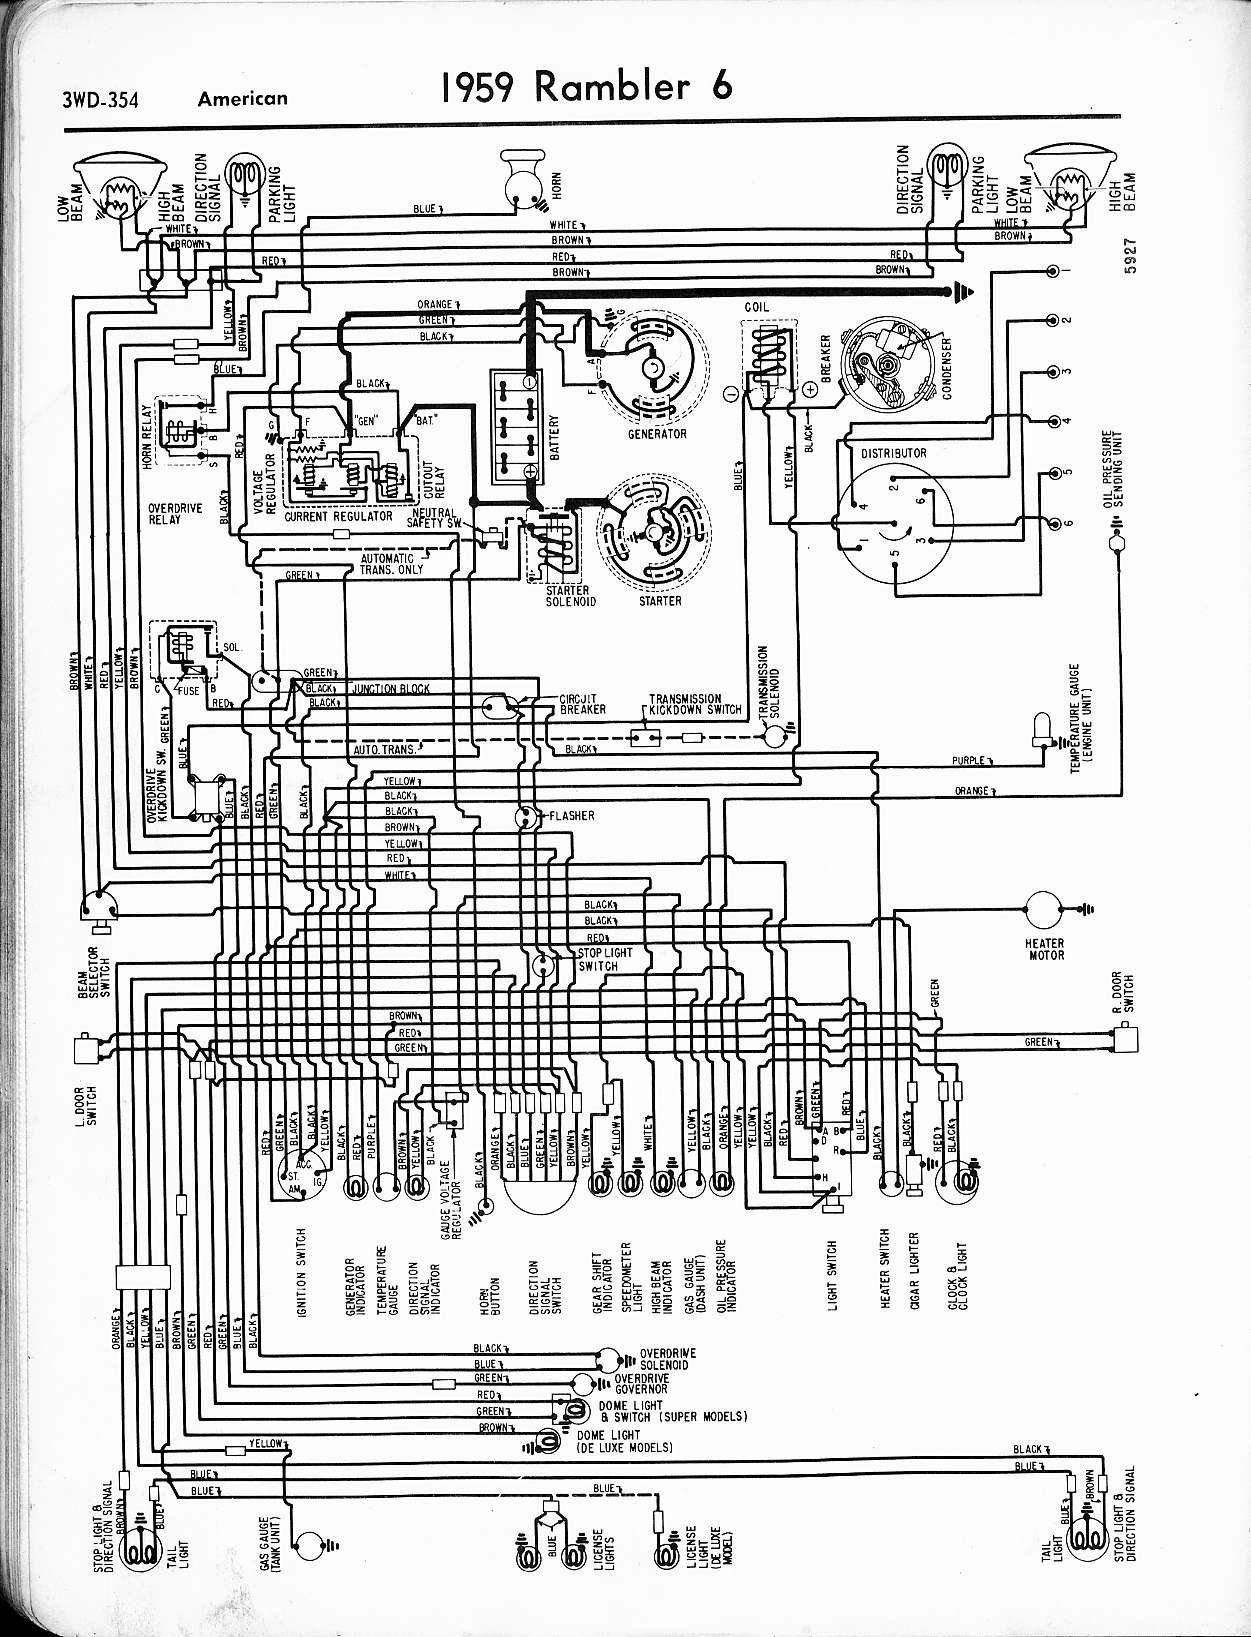 MWire5765 354 rambler wiring diagrams the old car manual project 1971 AMC Javelin at aneh.co